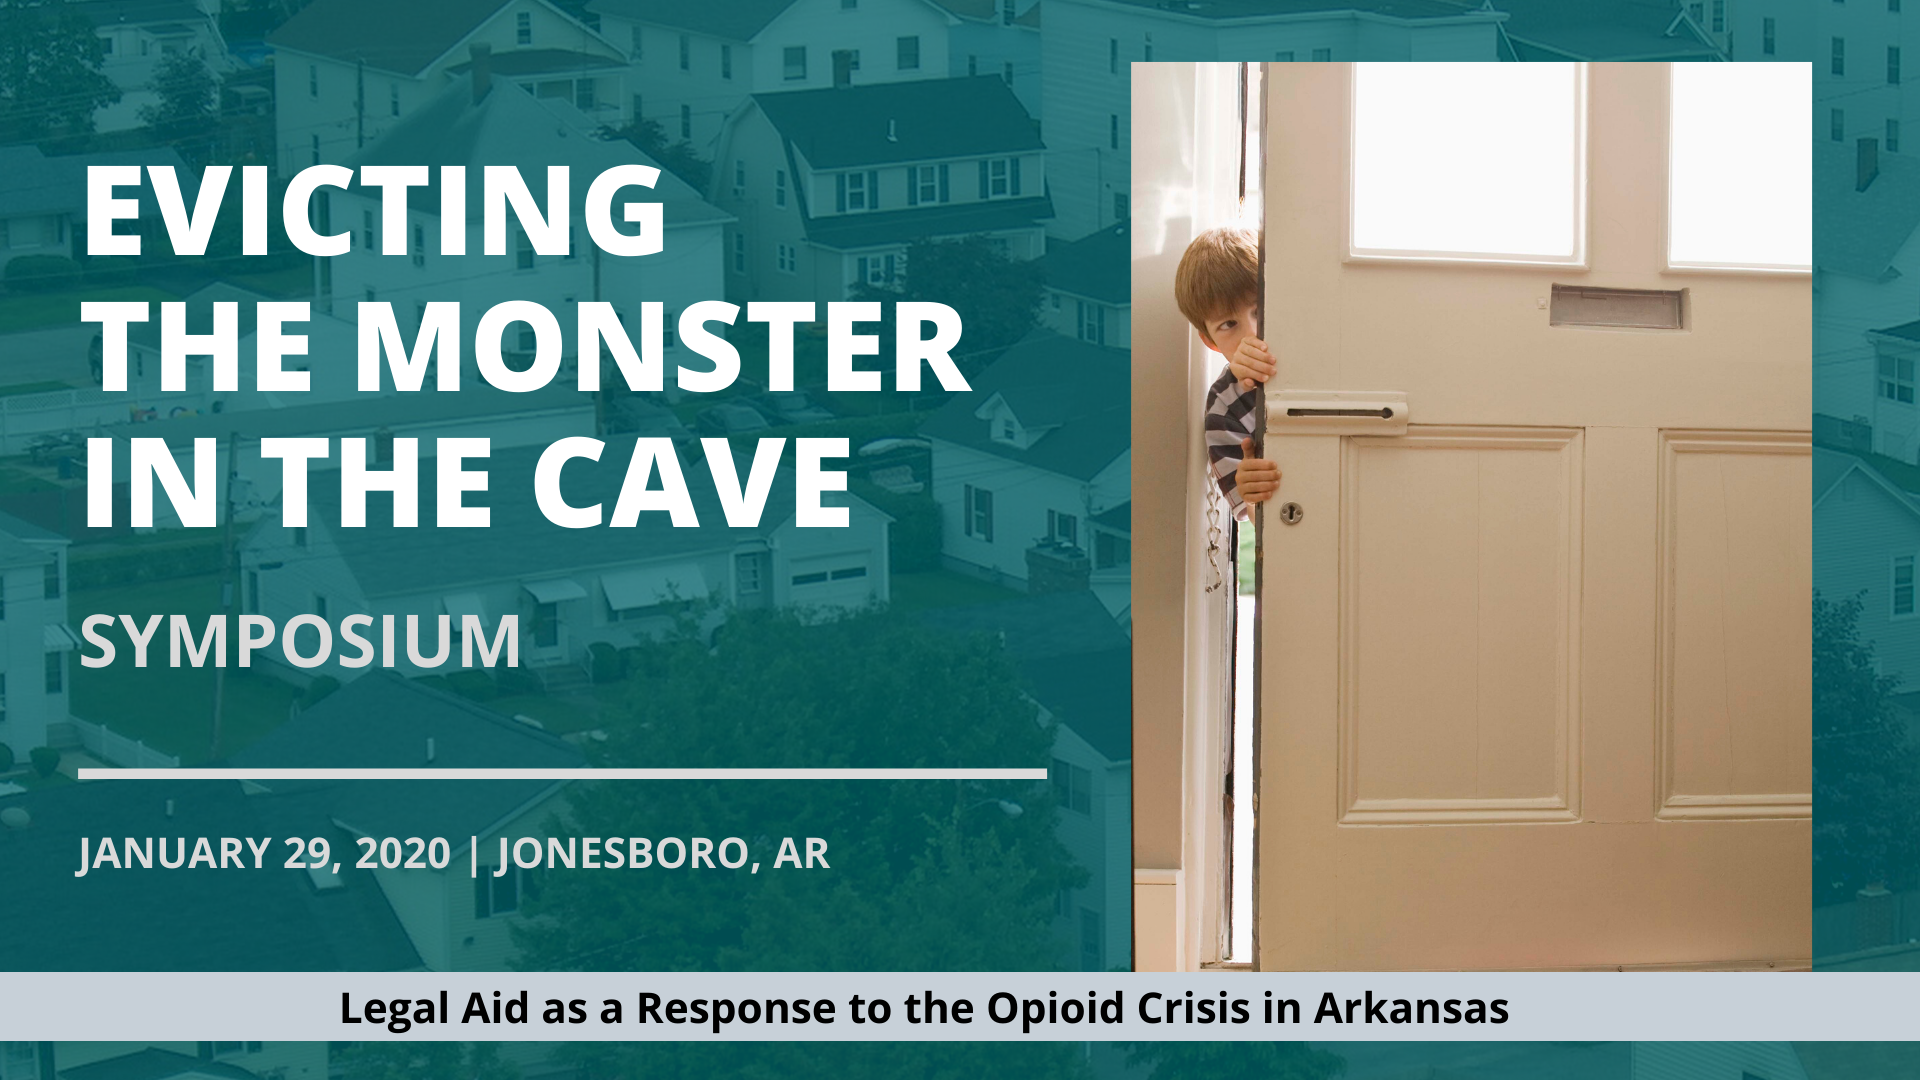 Evicting the Monster in the Cave Symposium